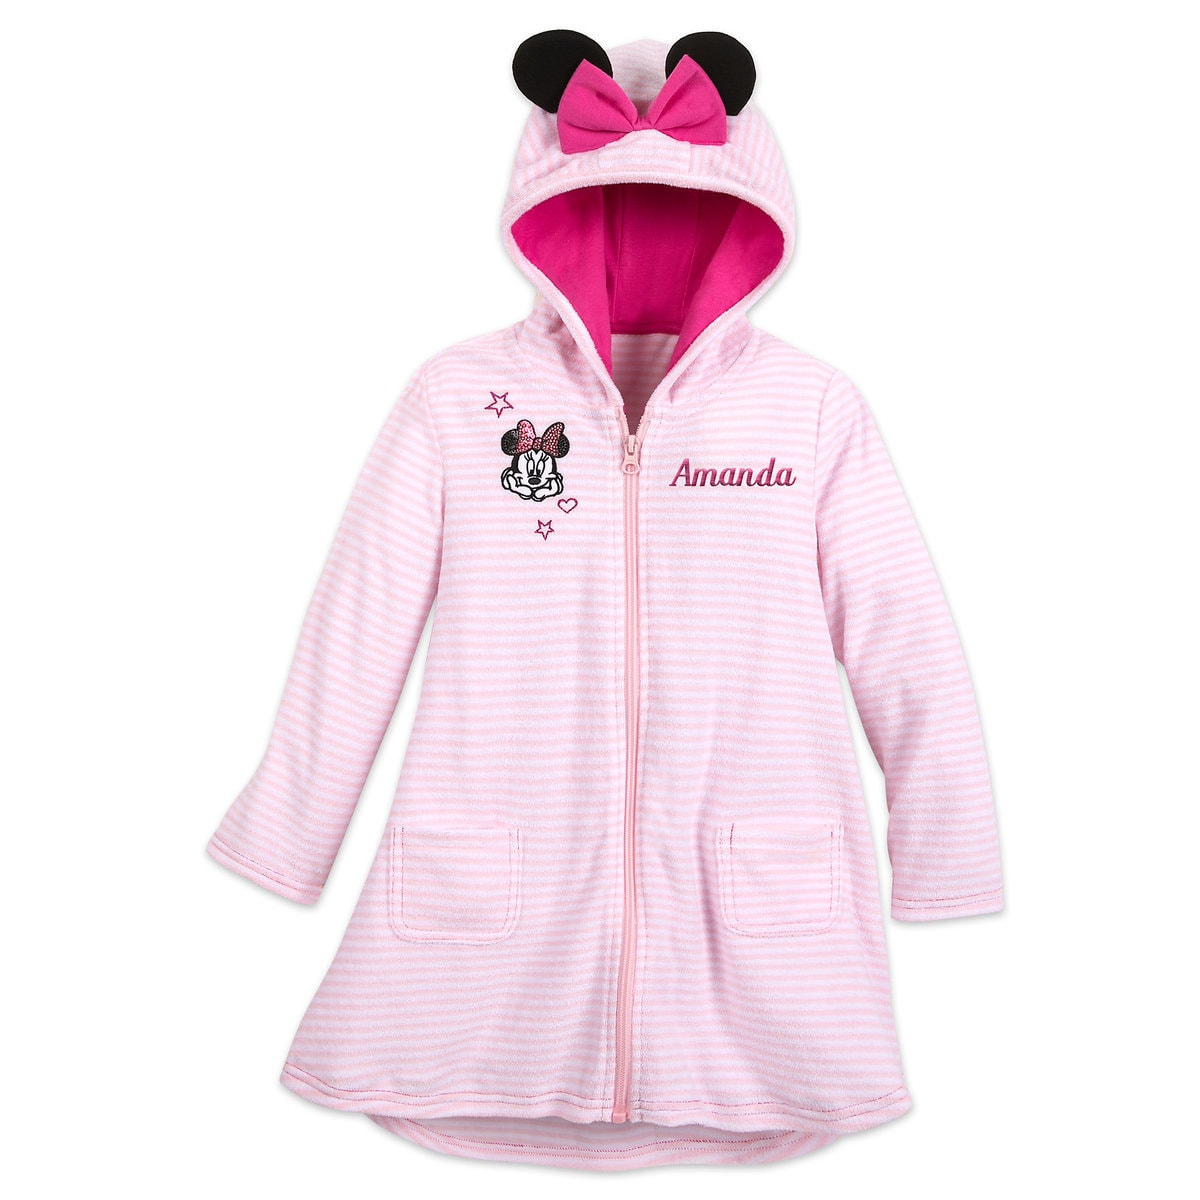 591b47f32 Product Image of Minnie Mouse Cover-Up for Girls - Personalizable # 1